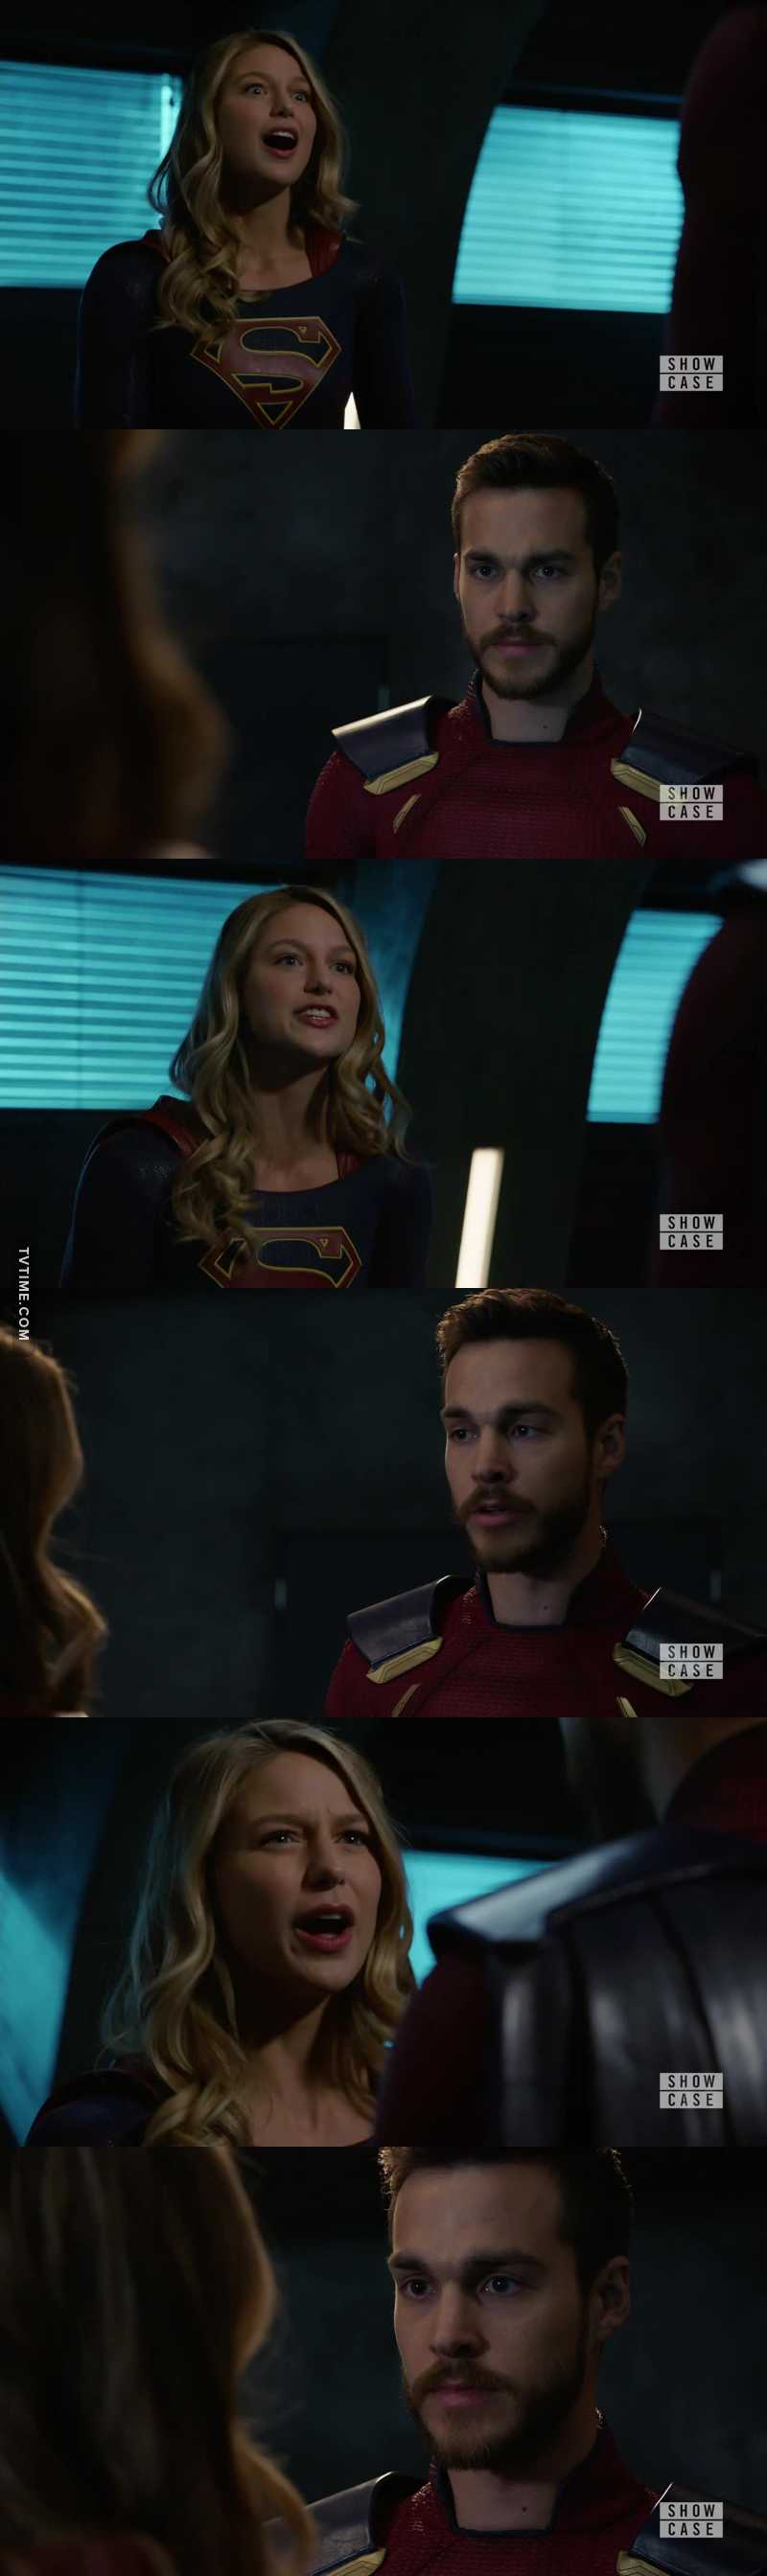 This broke my heart. I hated to see Kara and Mon-El fight. But it is what needed to happen. Kara was suppressing her feels about the whole Mon-El situation. Glad she finally got it off her chest.